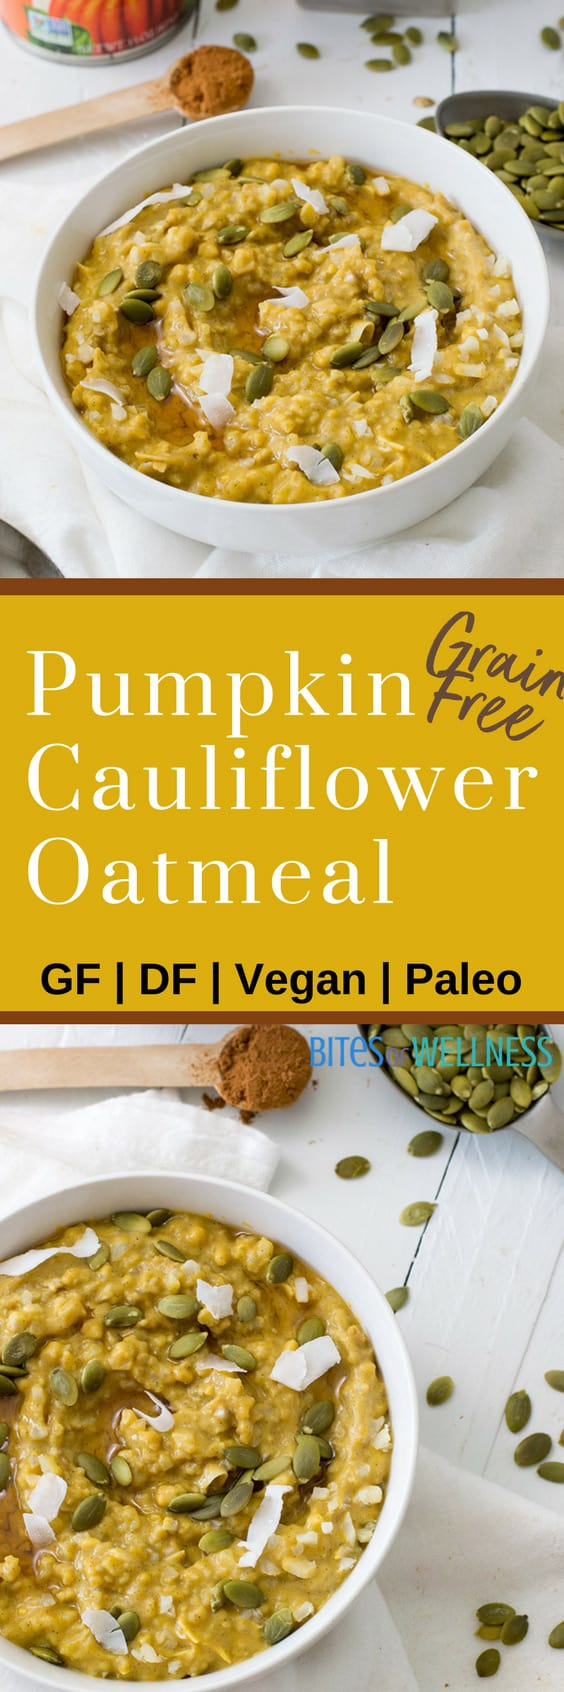 This simple grainfree pumpkin cauliflower oatmeal recipe is vegan, gluten free, grain free, paleo and delicious! Perfect way to start the day!